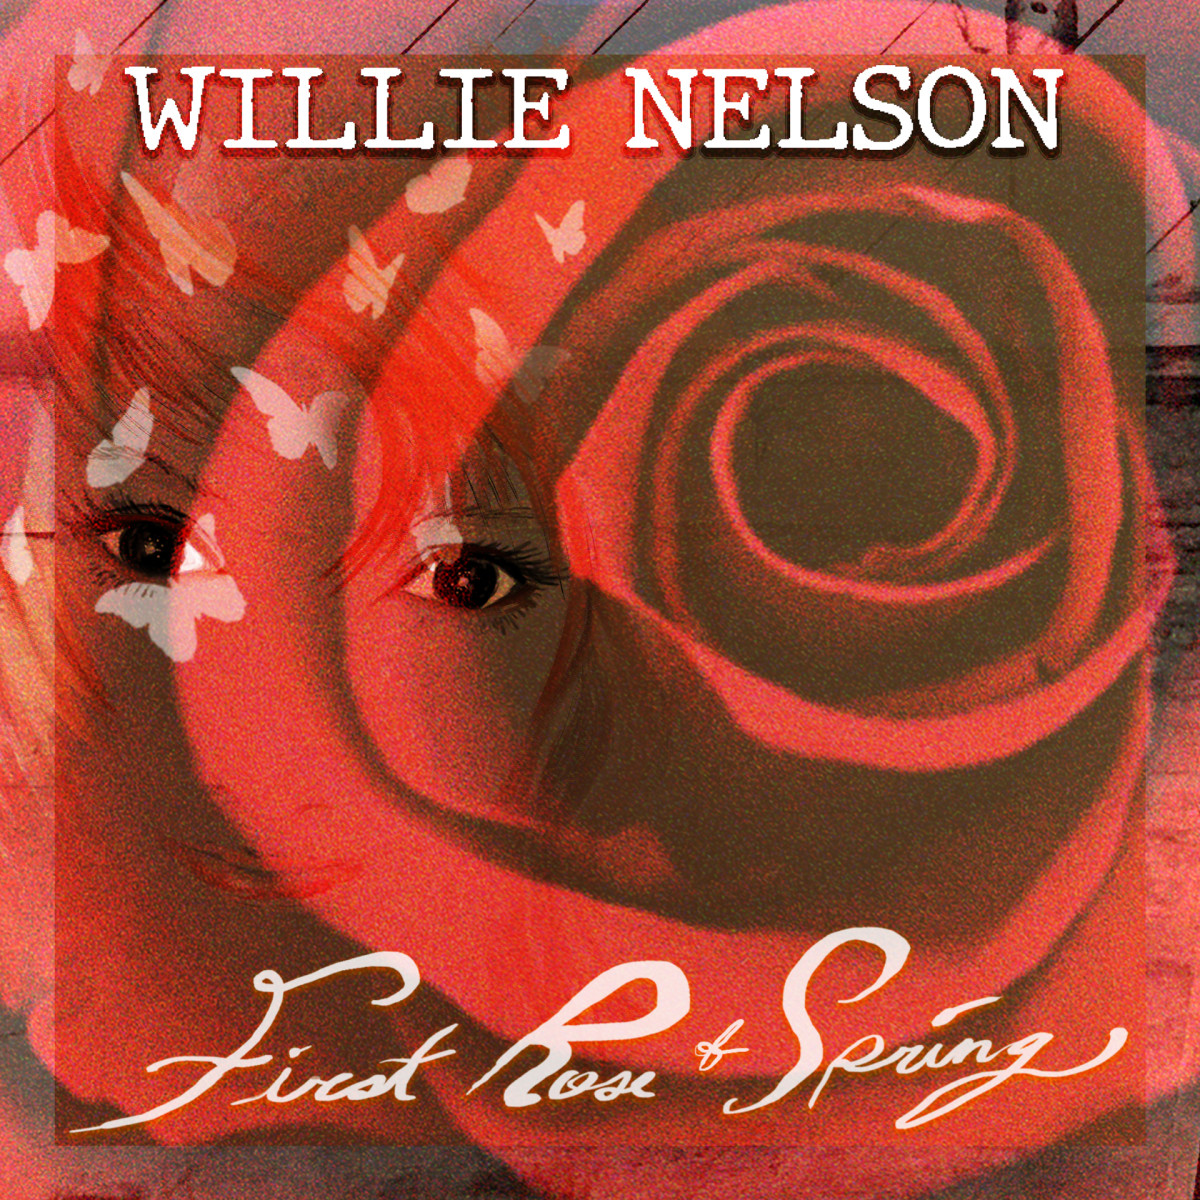 Willie Nelson, First Rose of Spring